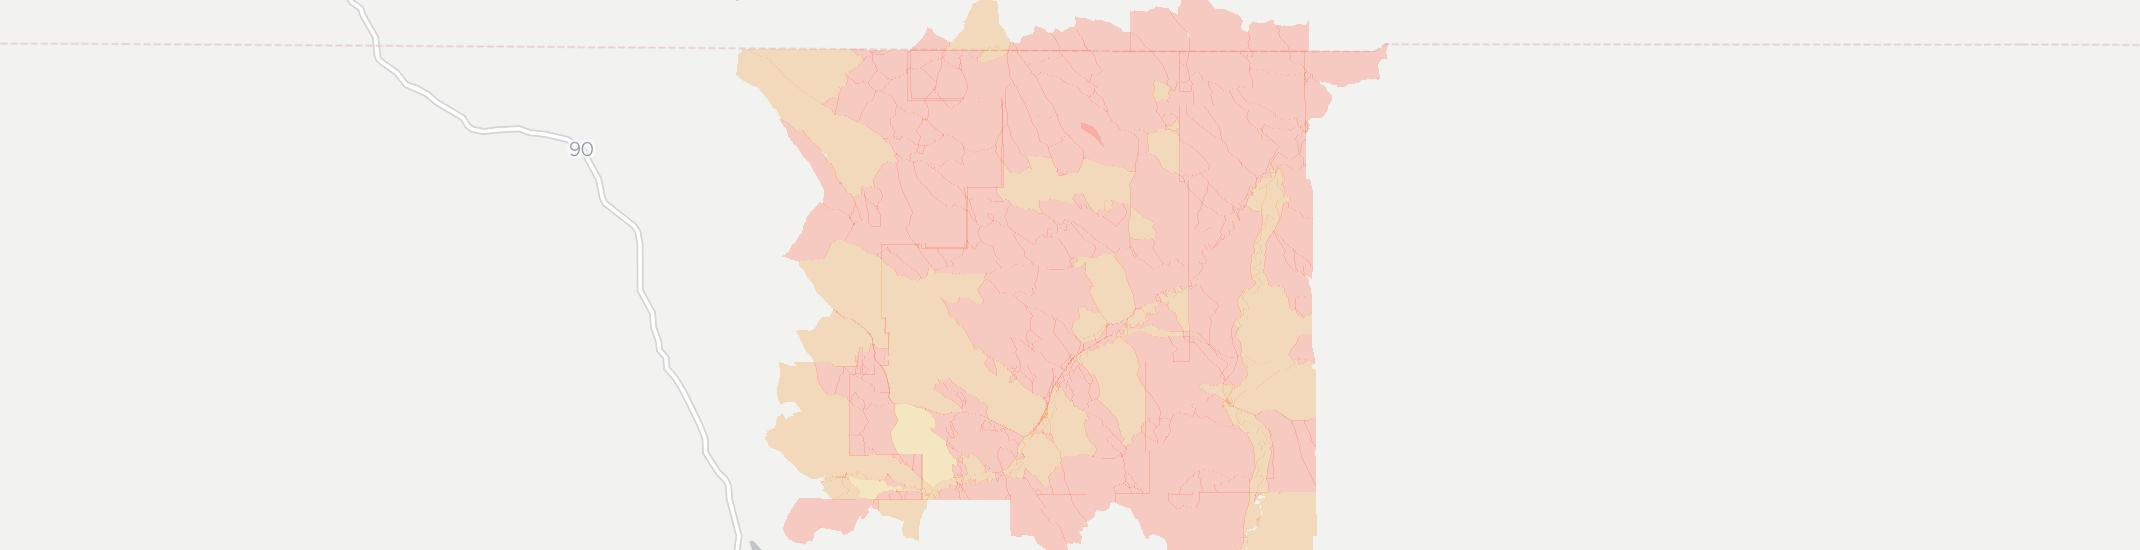 Clearmont Internet Competition Map. Click for interactive map.